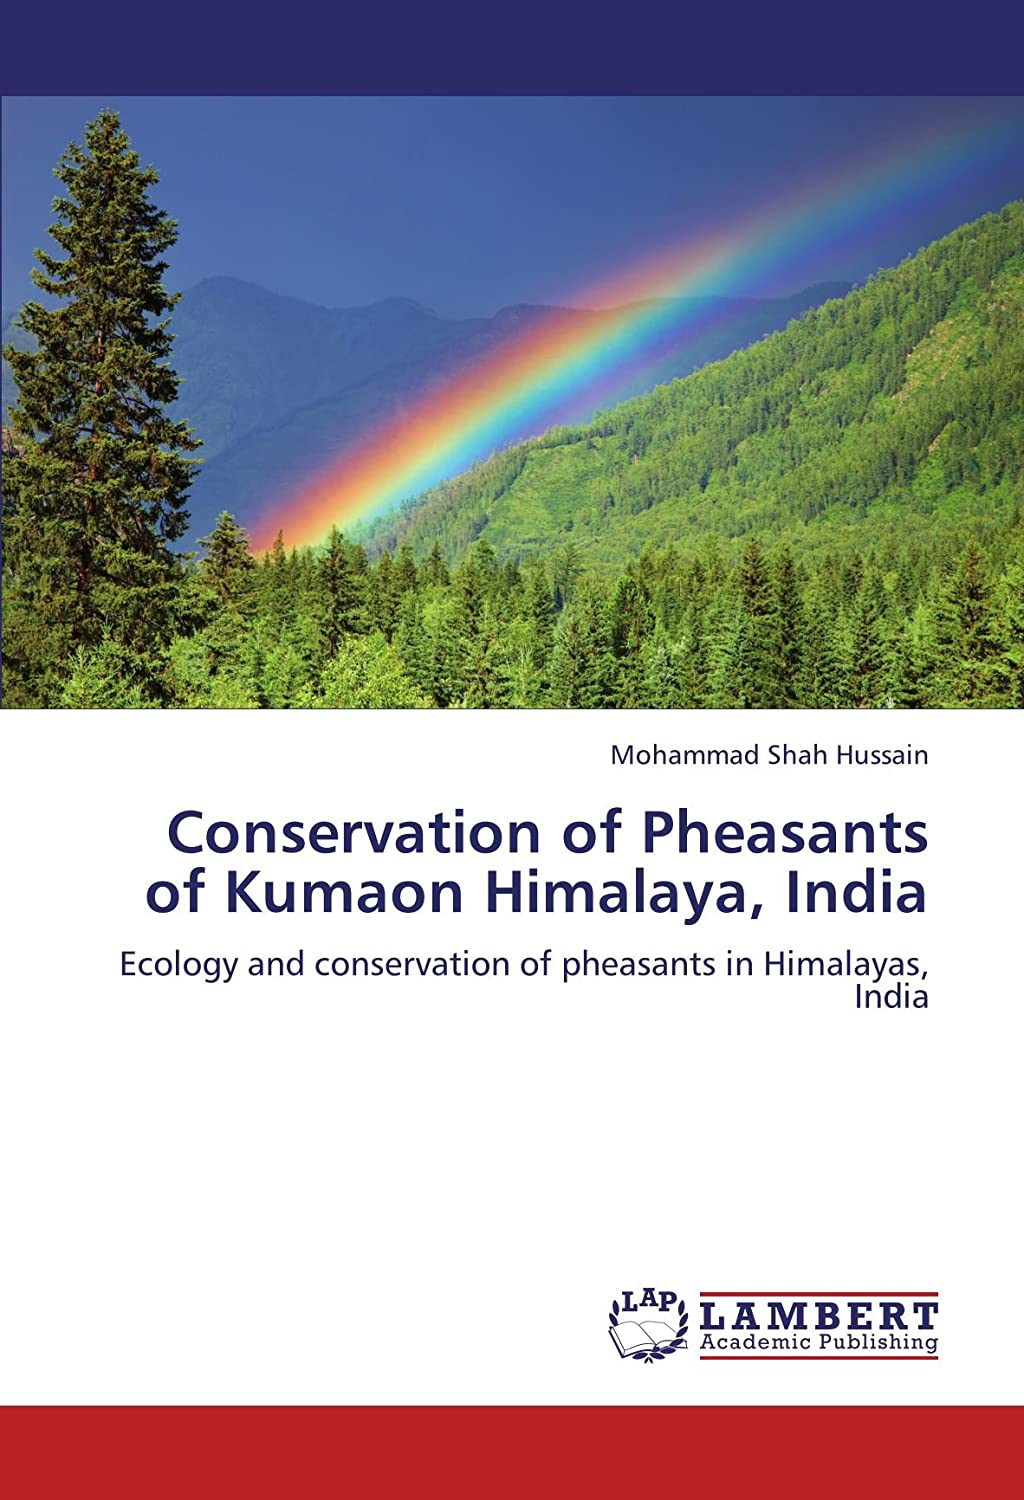 Conservation of Pheasants of Kumaon Himalaya, India